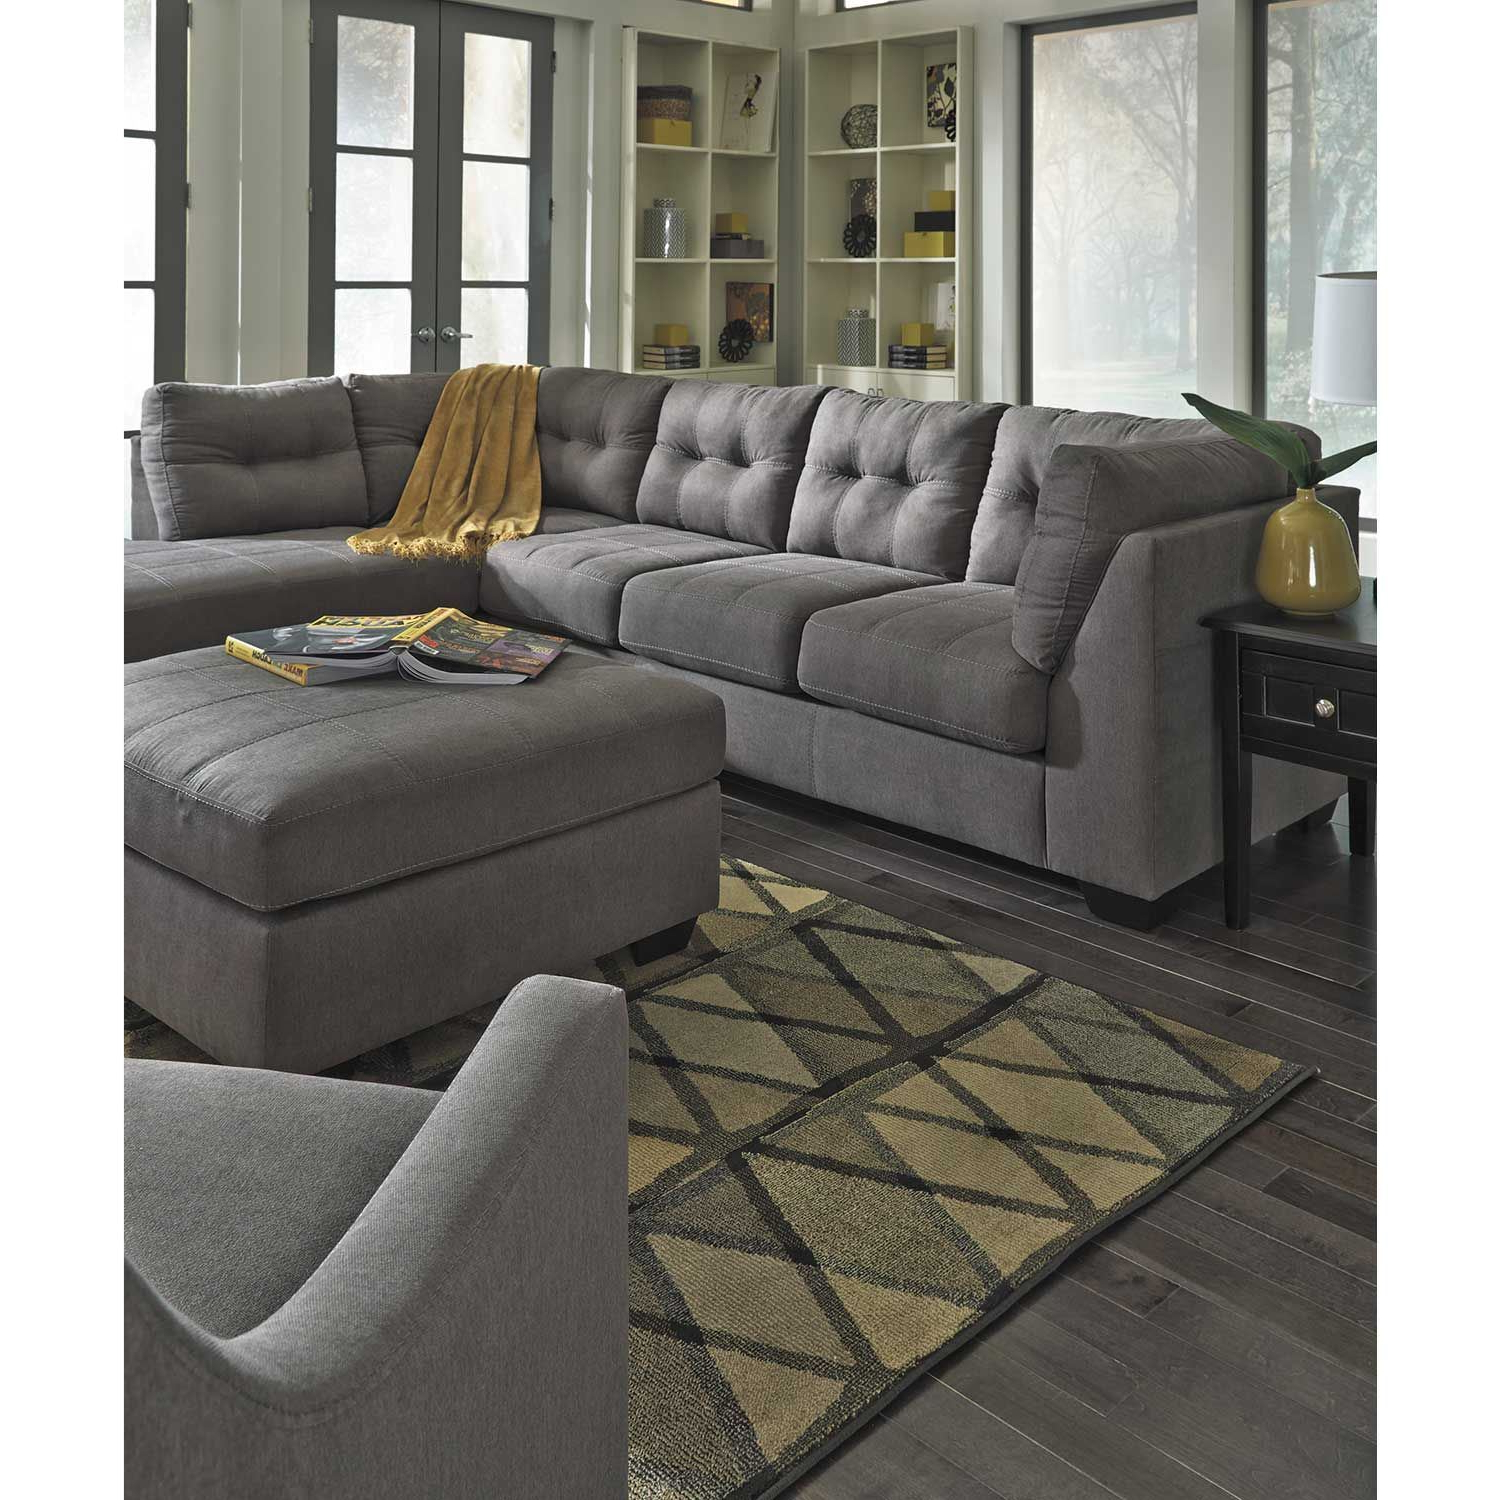 Current Arrowmask 2 Piece Sectionals With Laf Chaise Inside Maier Charcoal 2 Piece Sectional With Laf Chaise (Gallery 17 of 20)